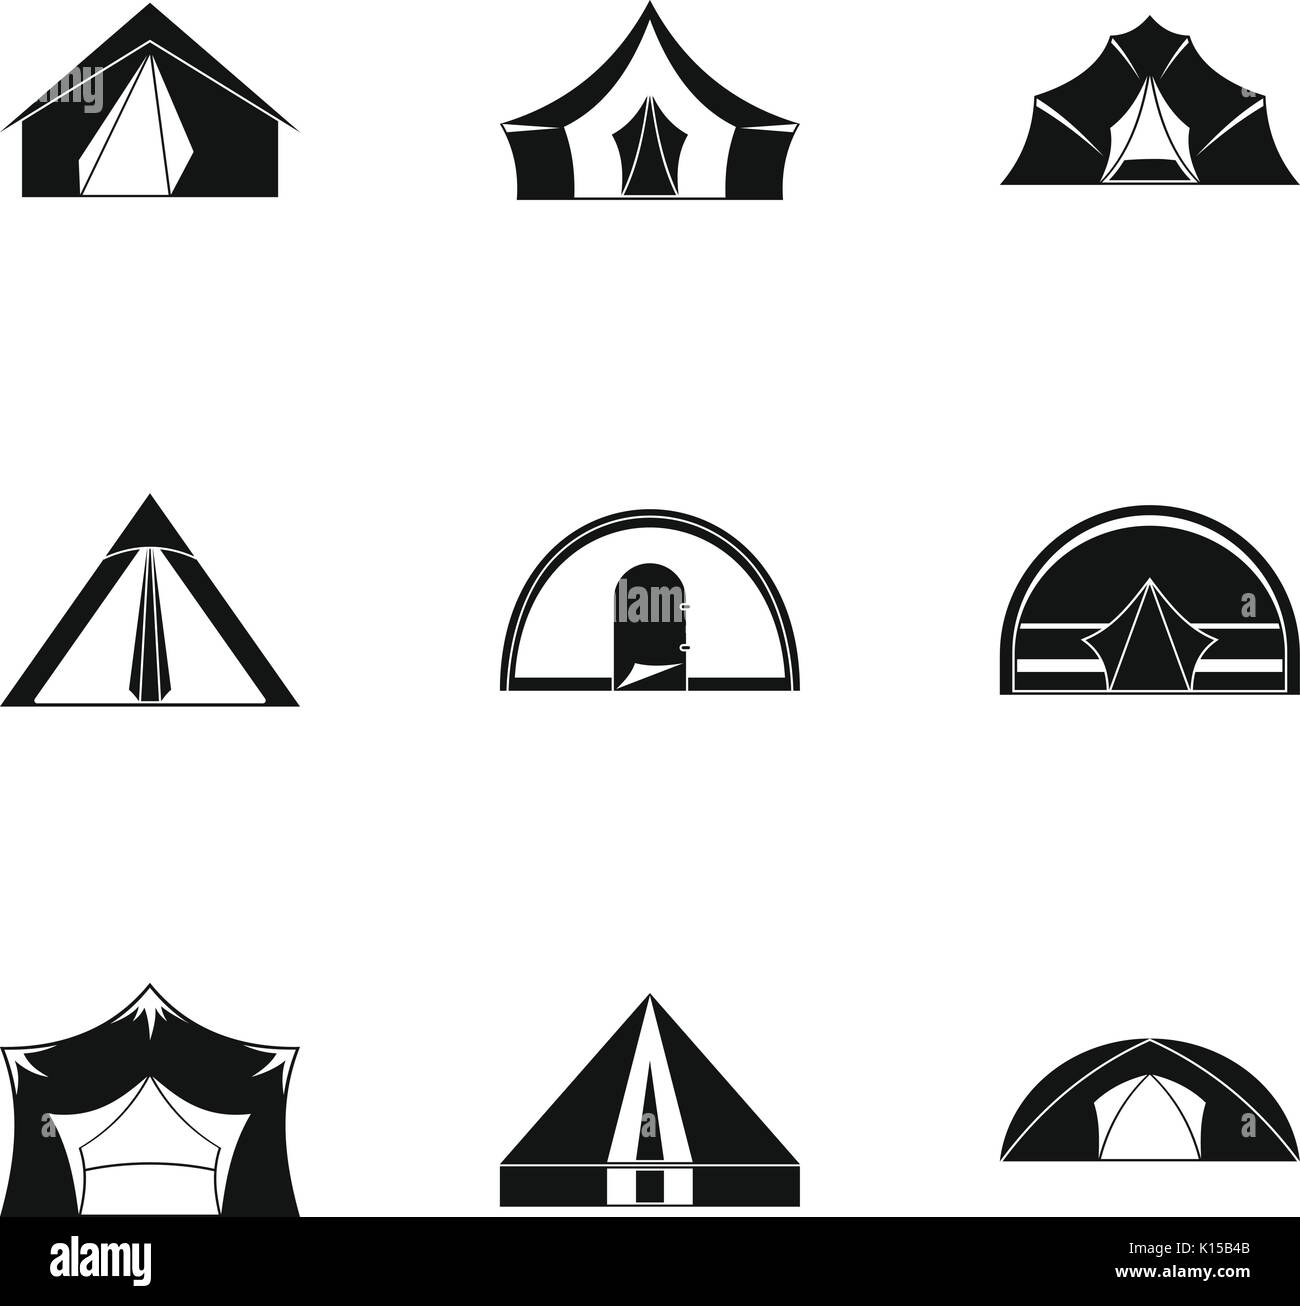 Tent form icon set, simple style Stock Vector Art & Illustration